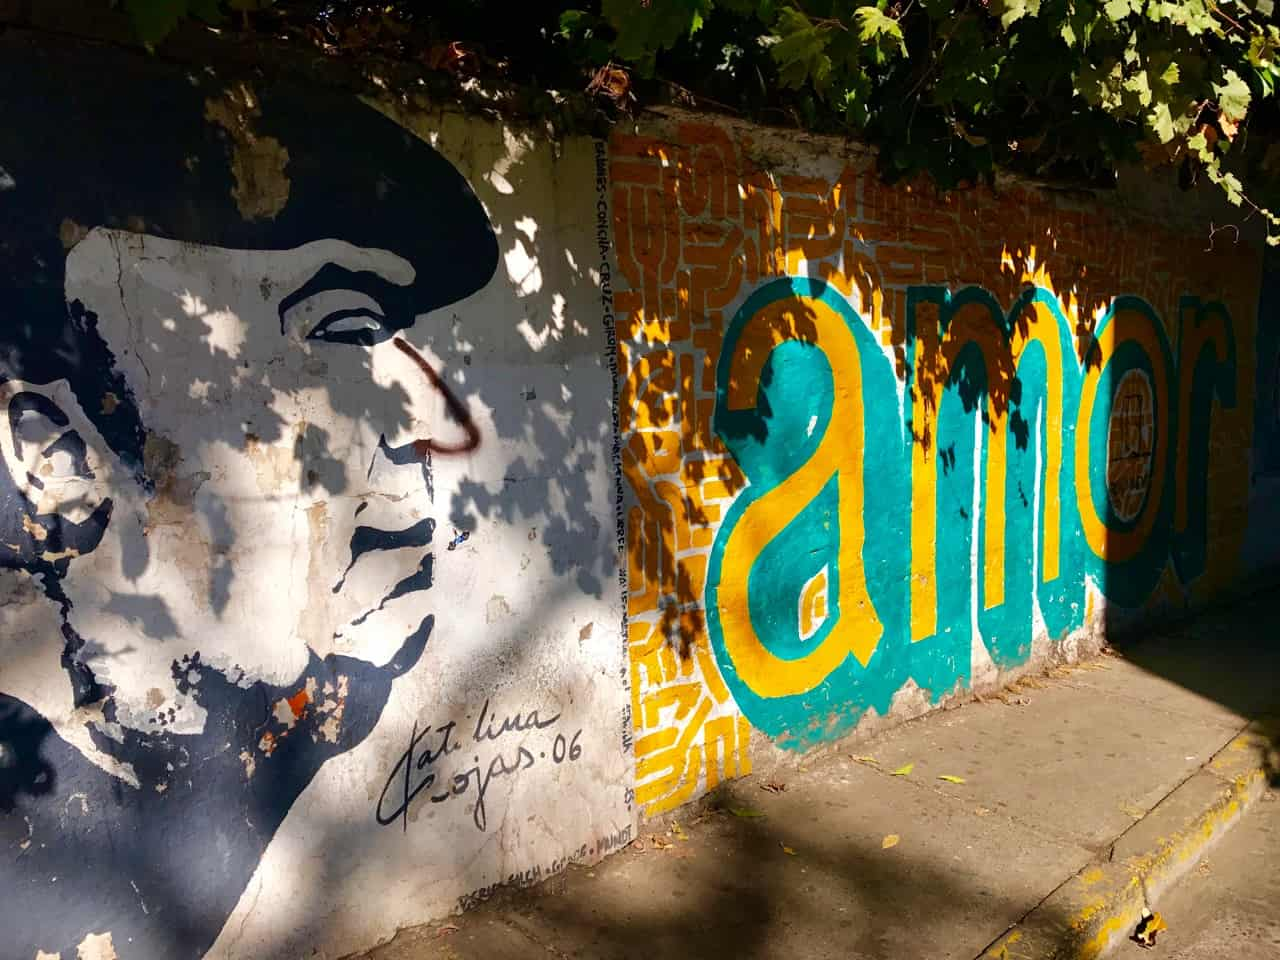 Things to do in Santiago - Street art is everywhere in Santiago, with Pablo Neruda as a popular theme